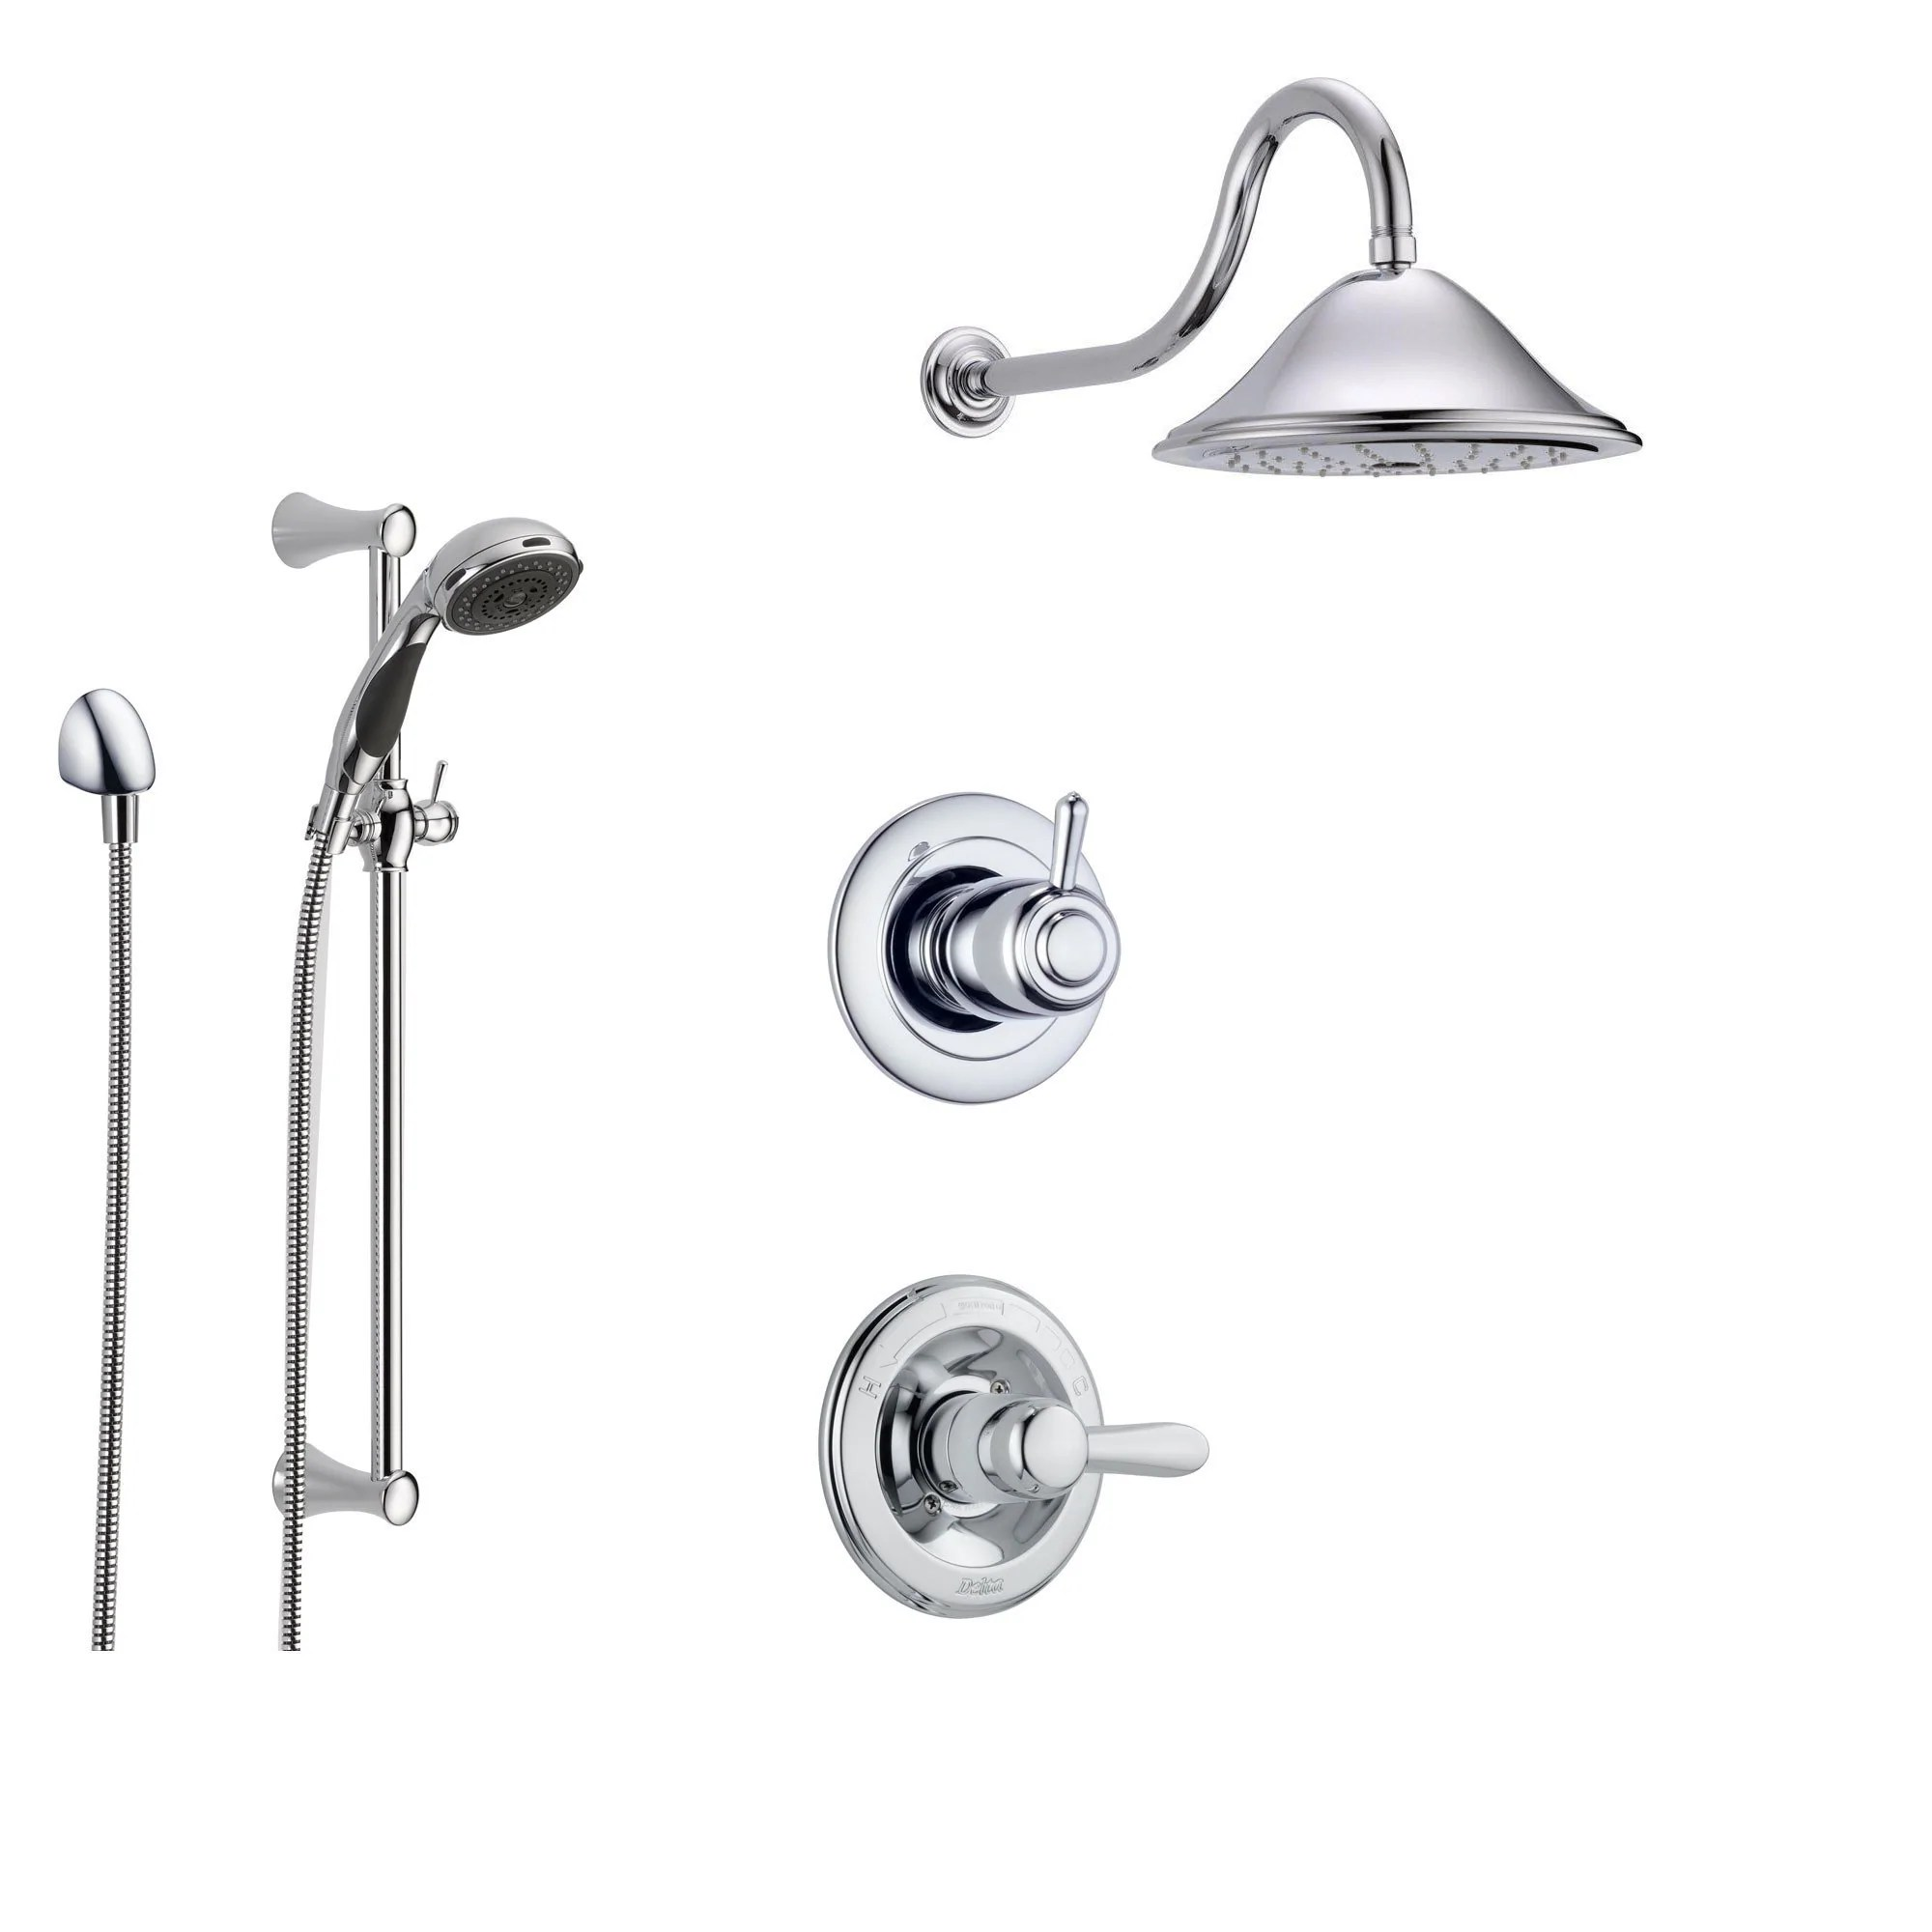 Delta Shower Diverter Delta Lahara Chrome Shower System With Normal Shower Handle 3 Setting Diverter Large Rain Showerhead And Handheld Shower Ss143881